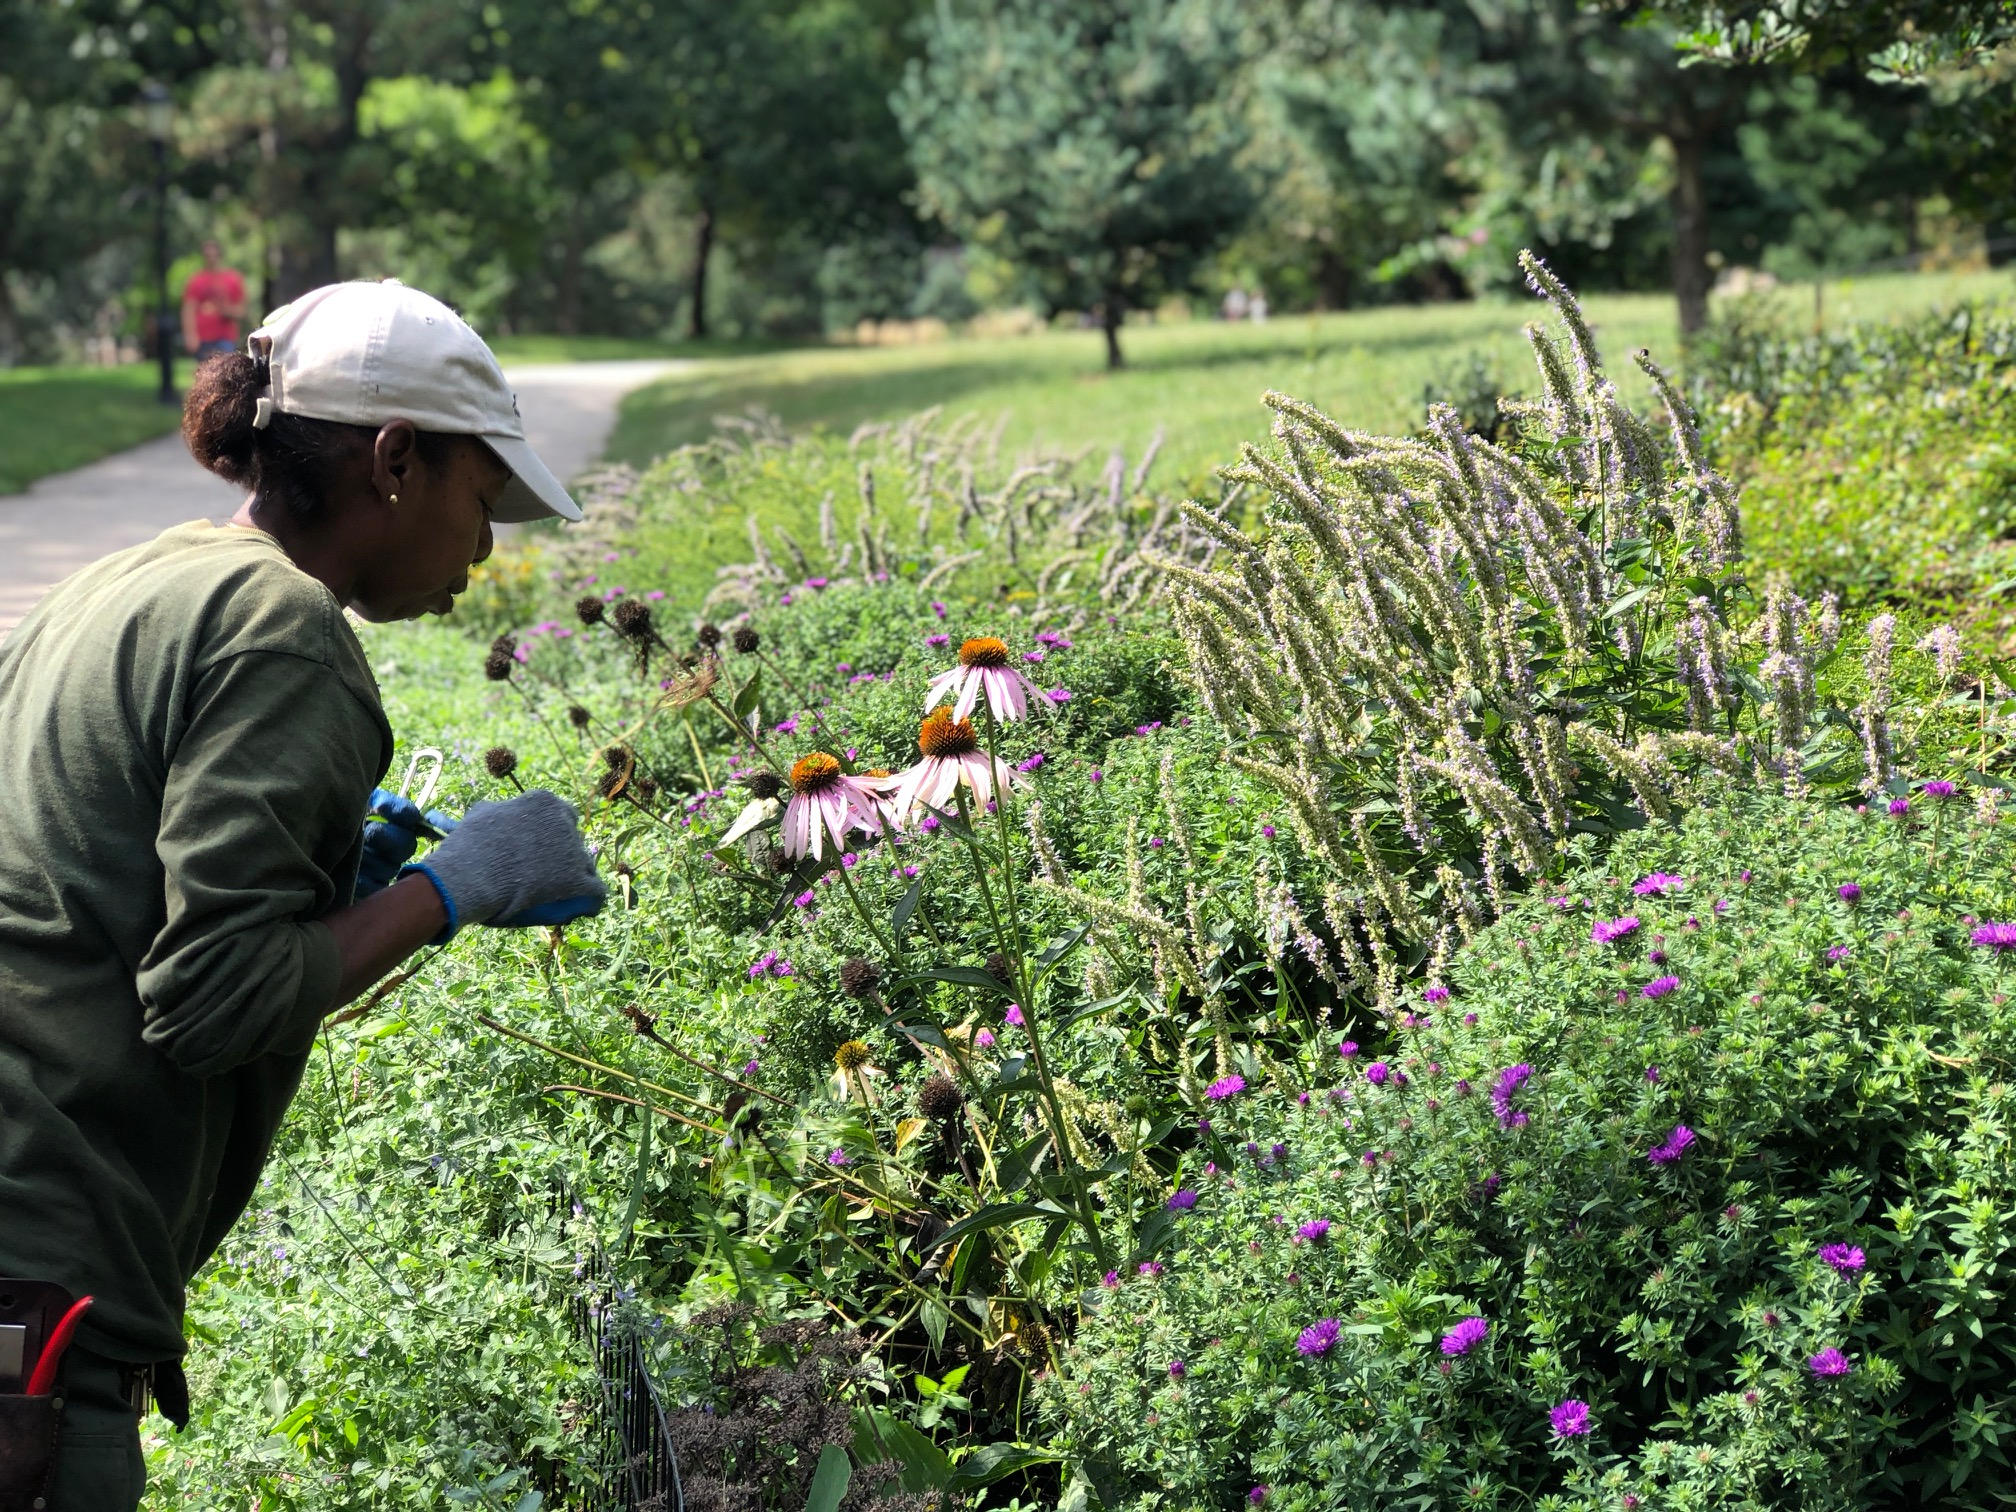 Gardener Maxine Web stopped to smell the coneflowers at the South Portland entrance garden, winner of the NYC Parks August Garden of the Month award.